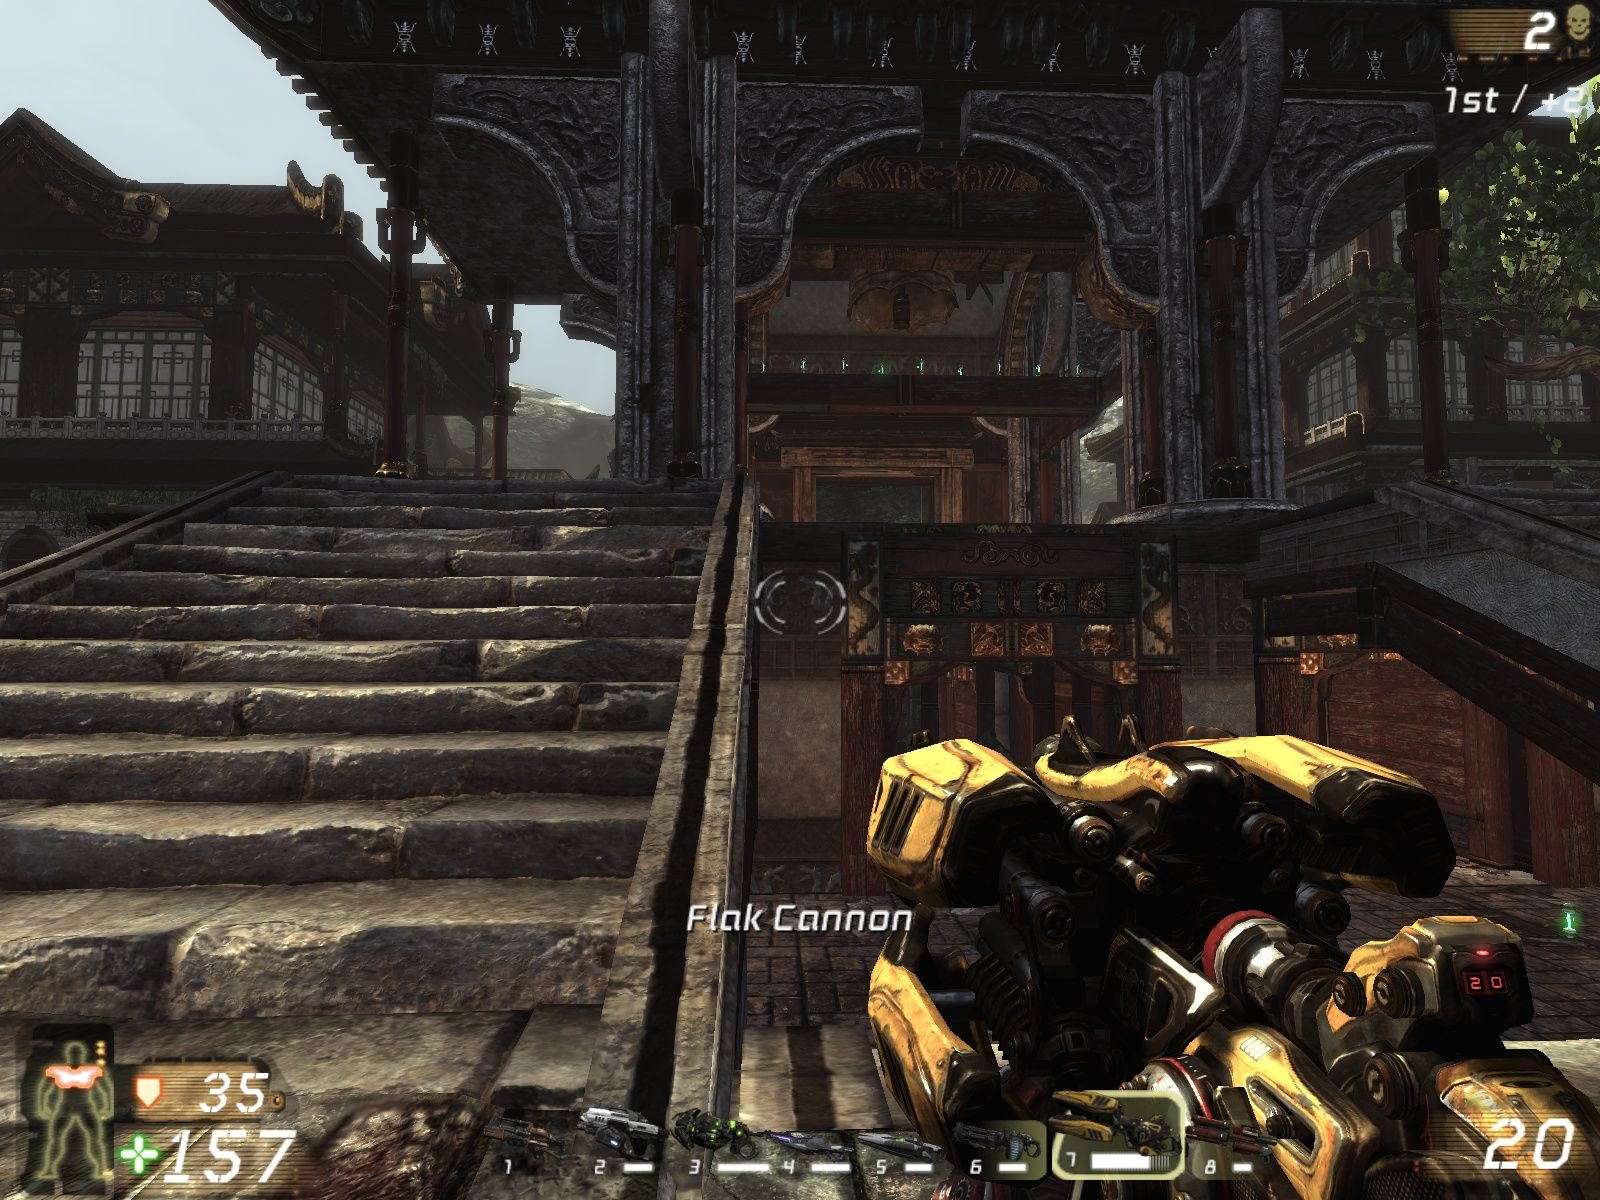 Unreal Tournament III Windows The good old Flak Cannon is still there.